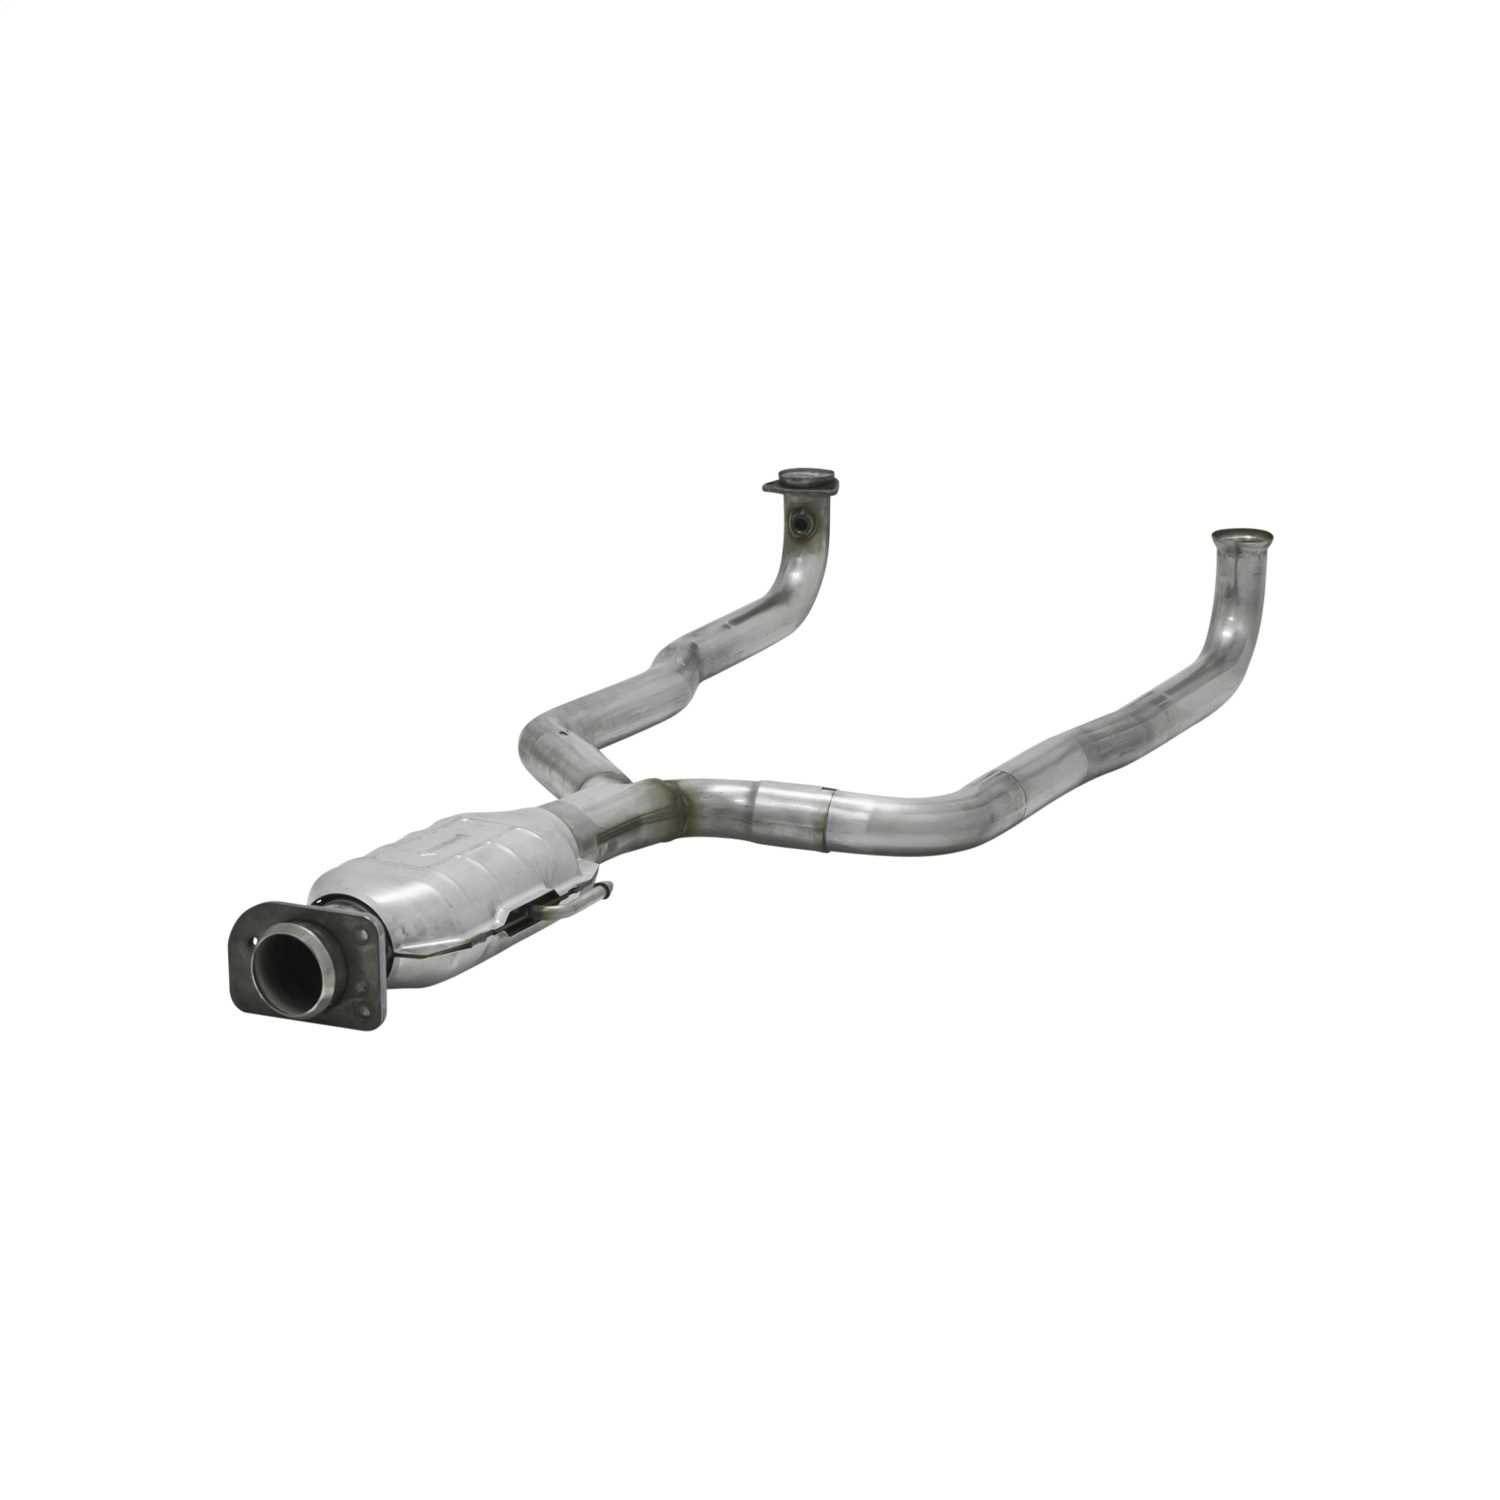 2010028 Flowmaster 49 State Catalytic Converters Direct Fit Catalytic Converter